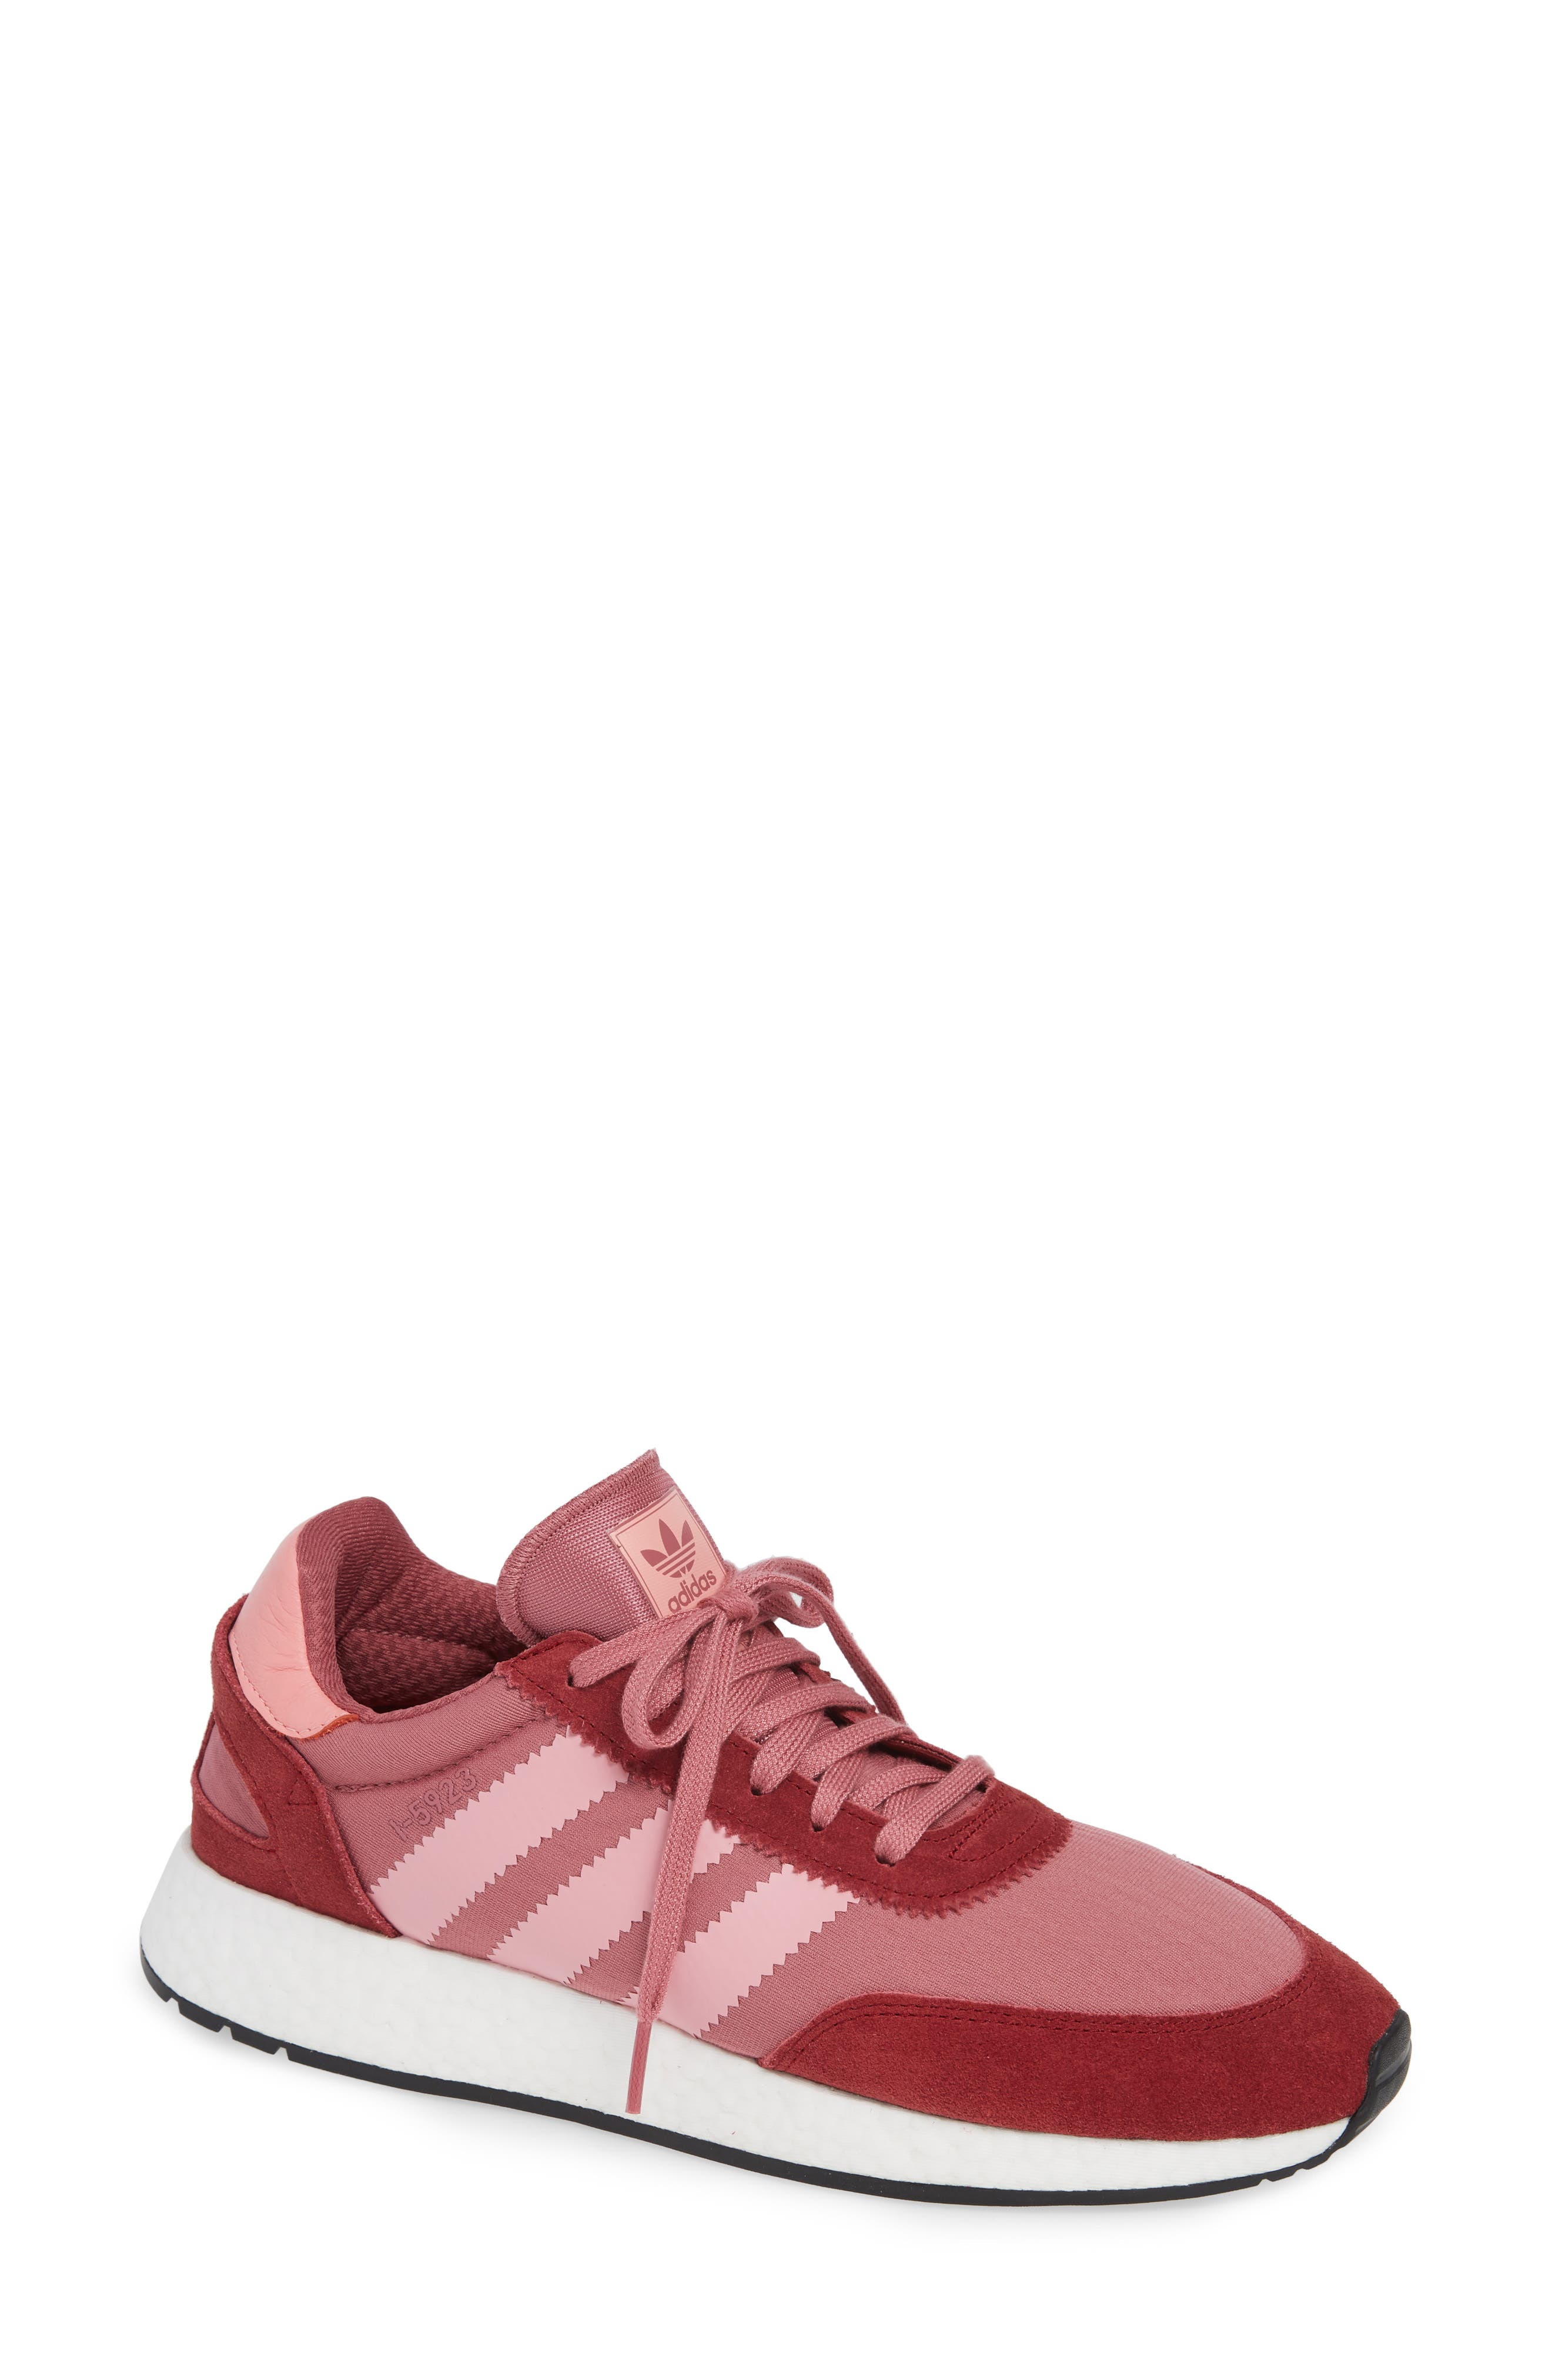 bde52bd6f7fc Sneakers adidas for Women  Clothing